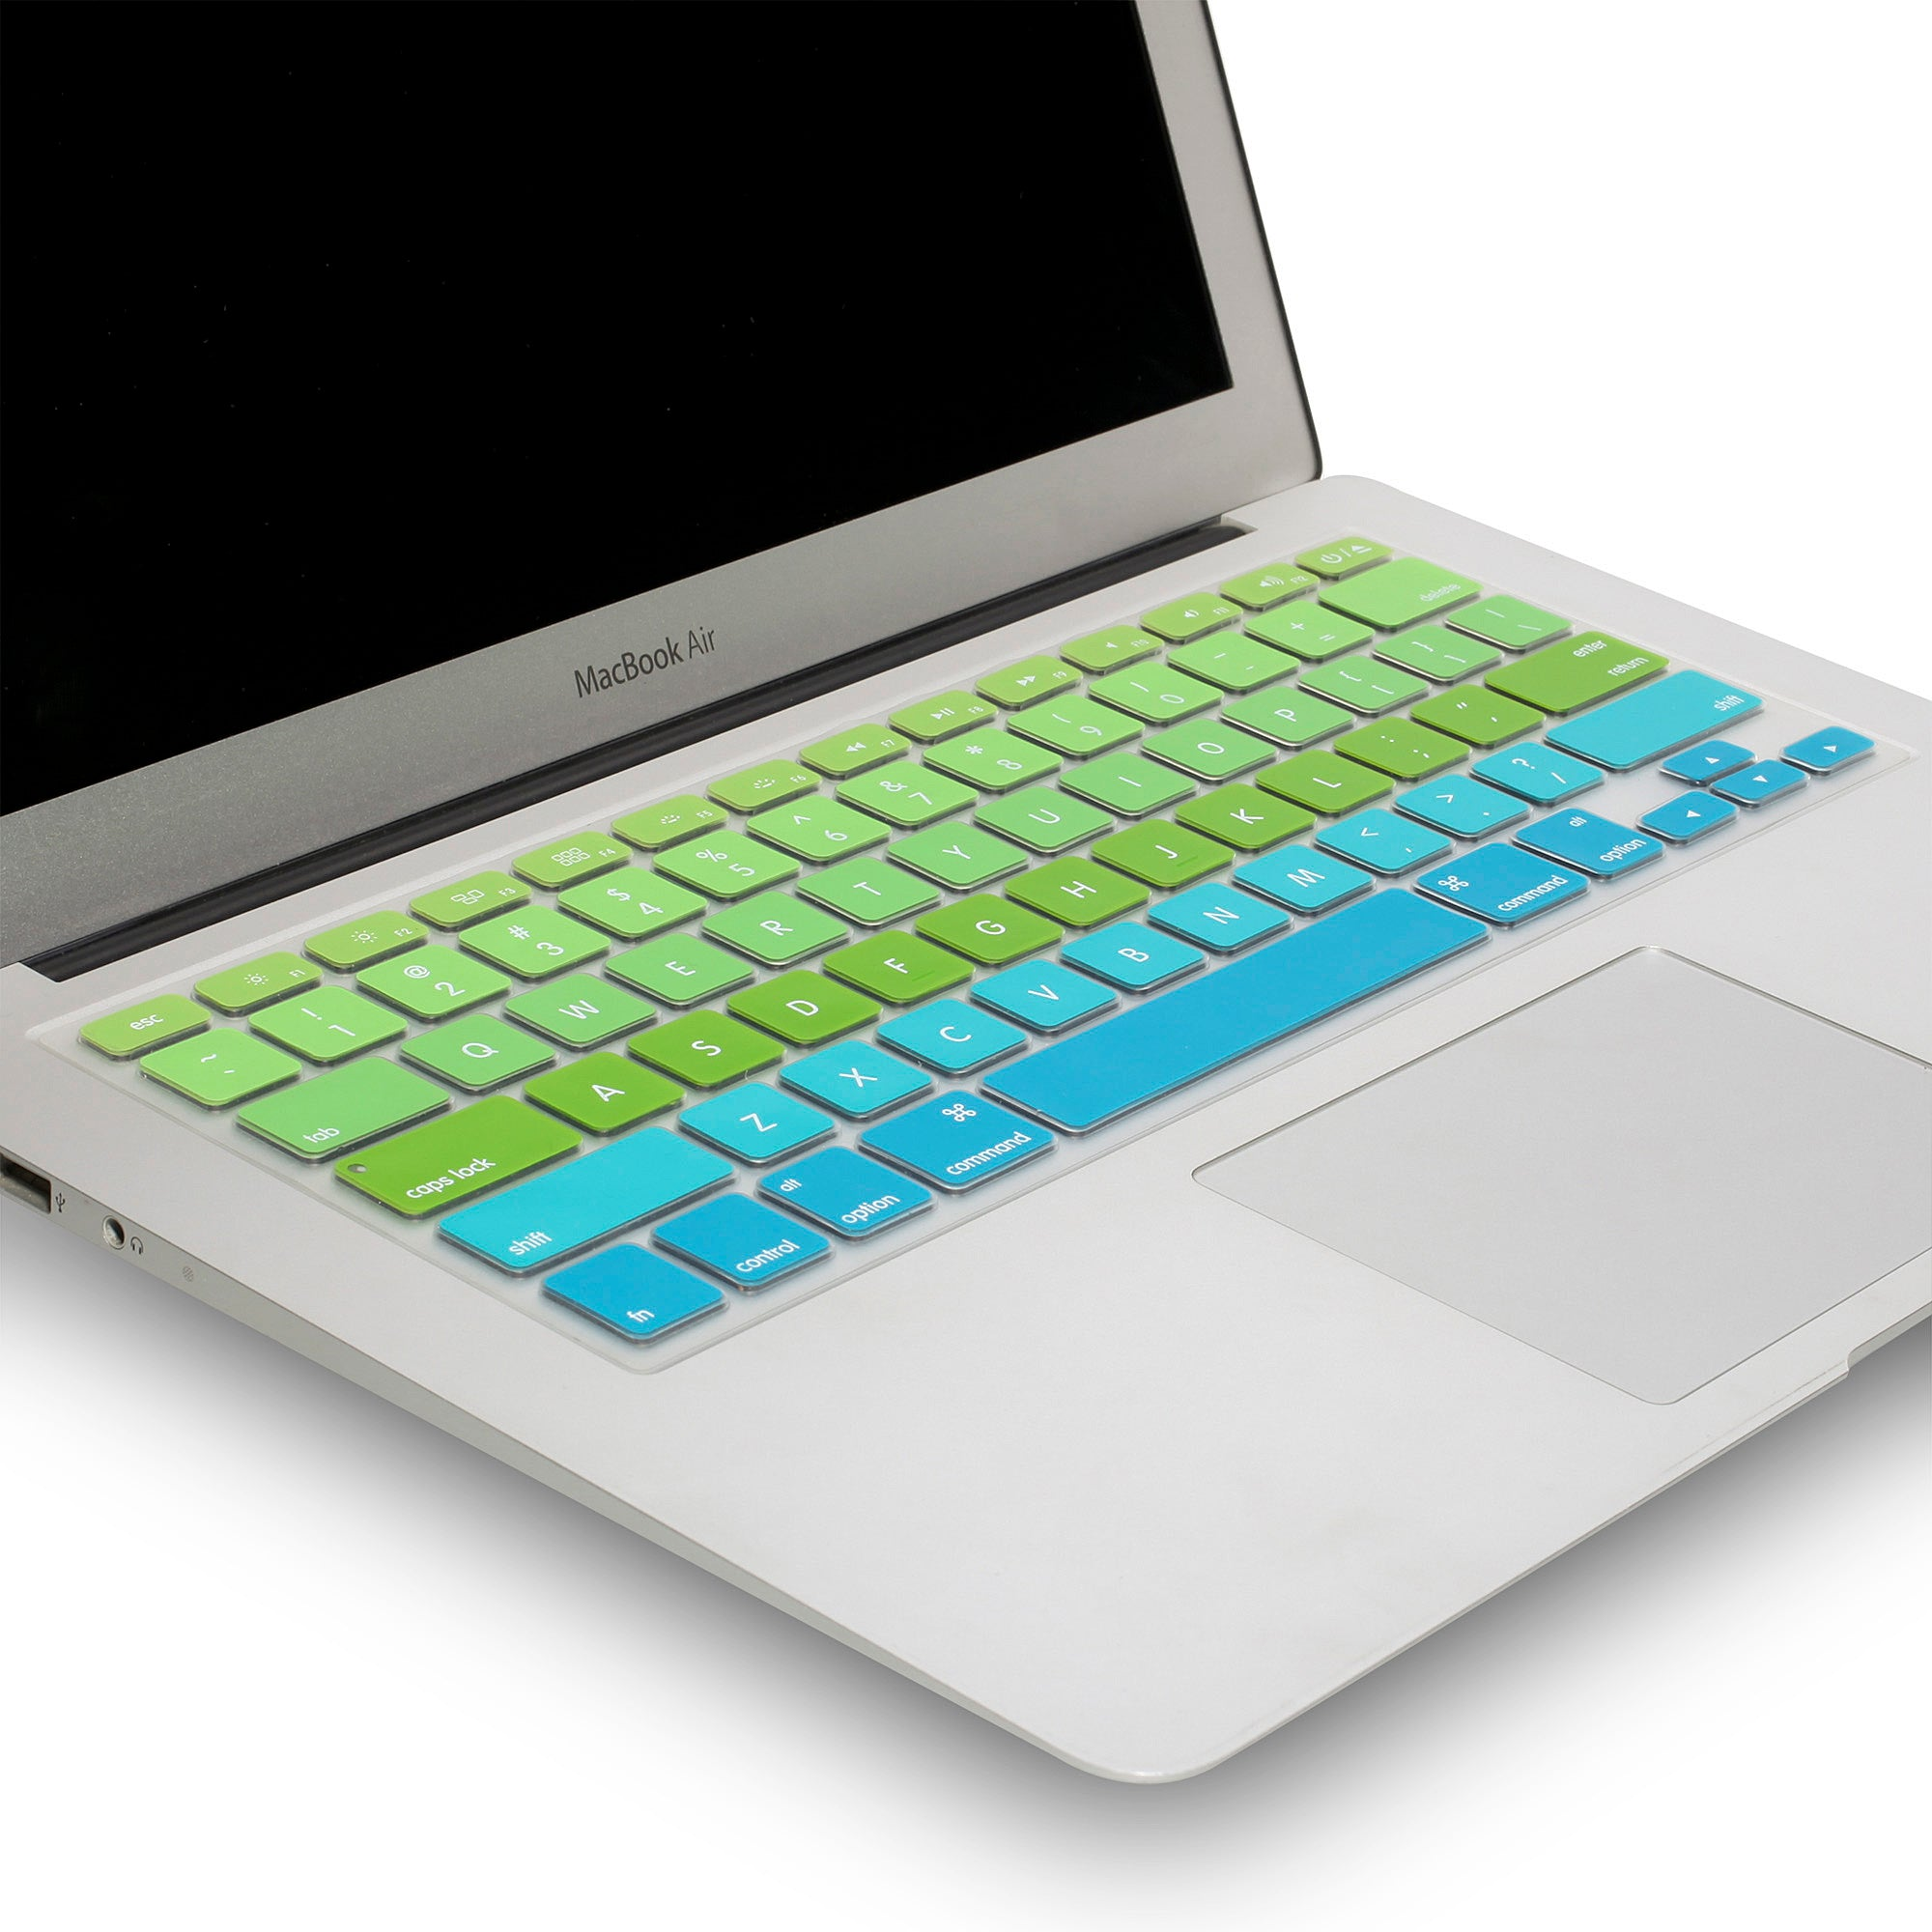 Ombre Colors Keyboard Cover | MacBook Pro 13"|2000|2000|?|False|4dcb706953b12df4ebcecfe3de772855|False|UNLIKELY|0.32660719752311707